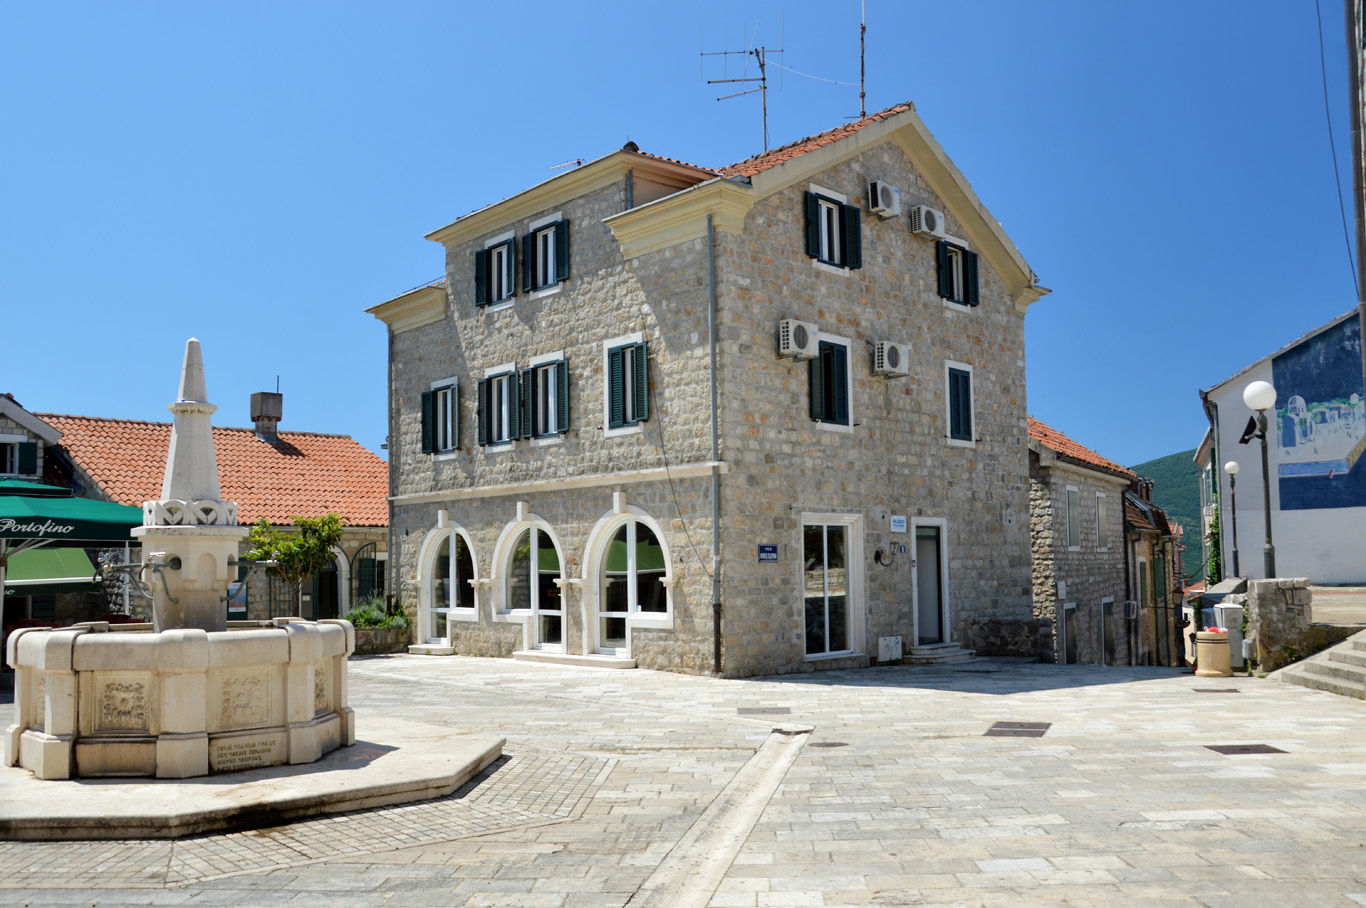 One of the small squares